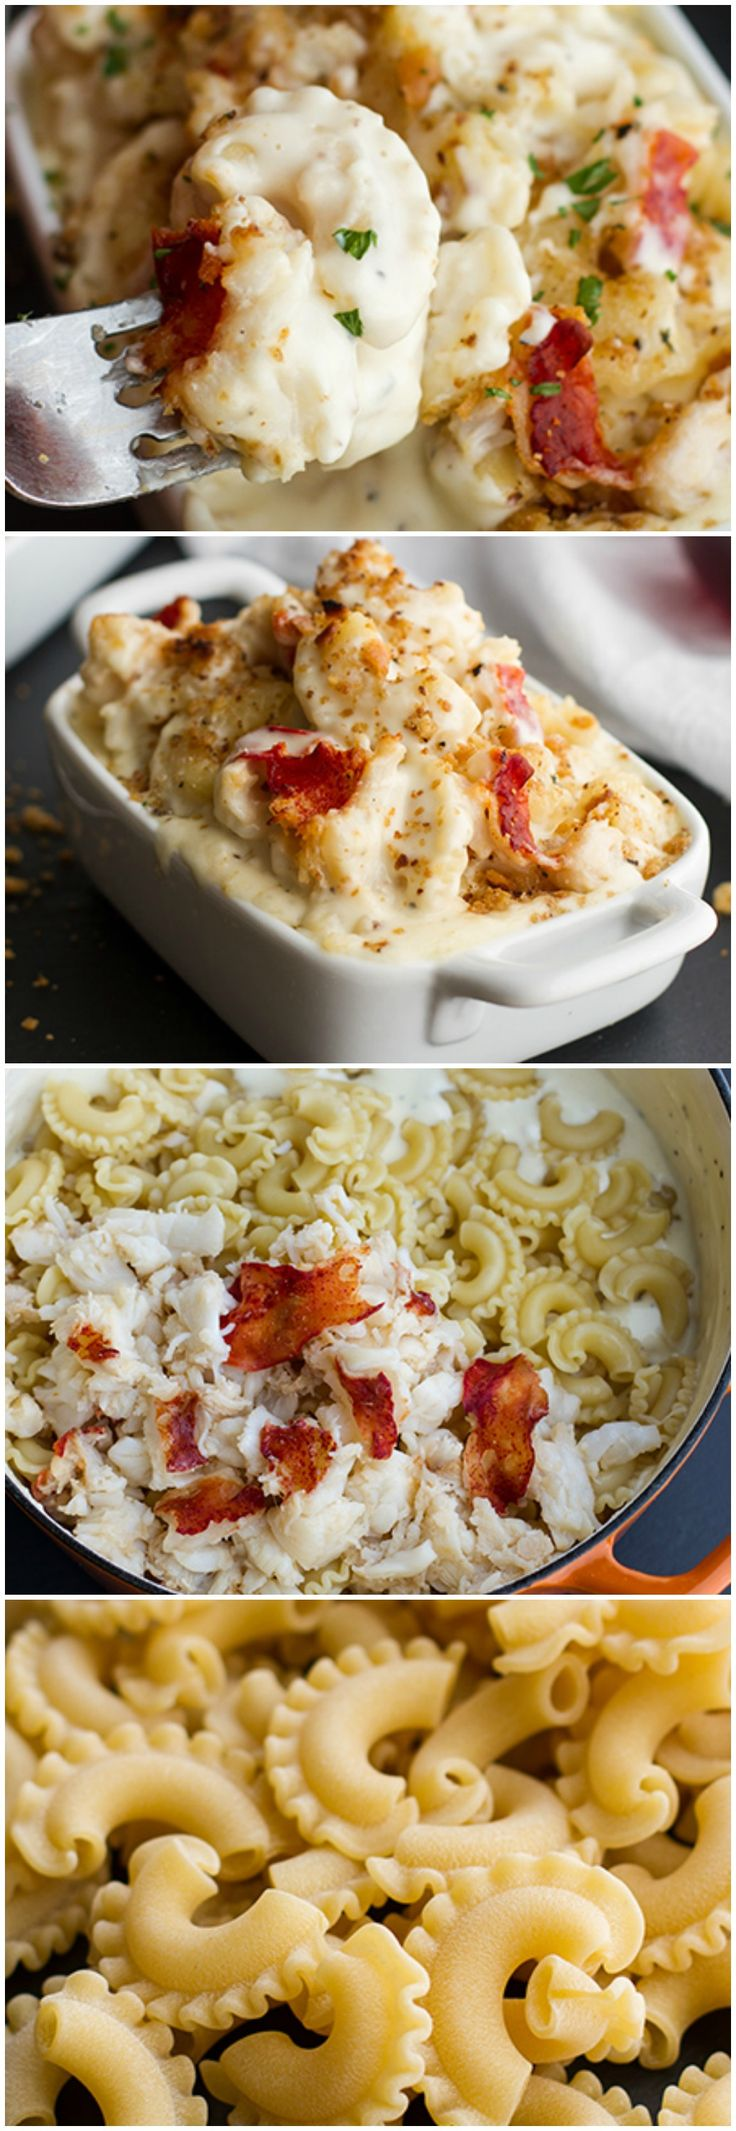 Lobster Mac & Cheese. Looks so good. Maybe add a little truffle oil too? food, pasta, dinner, meal